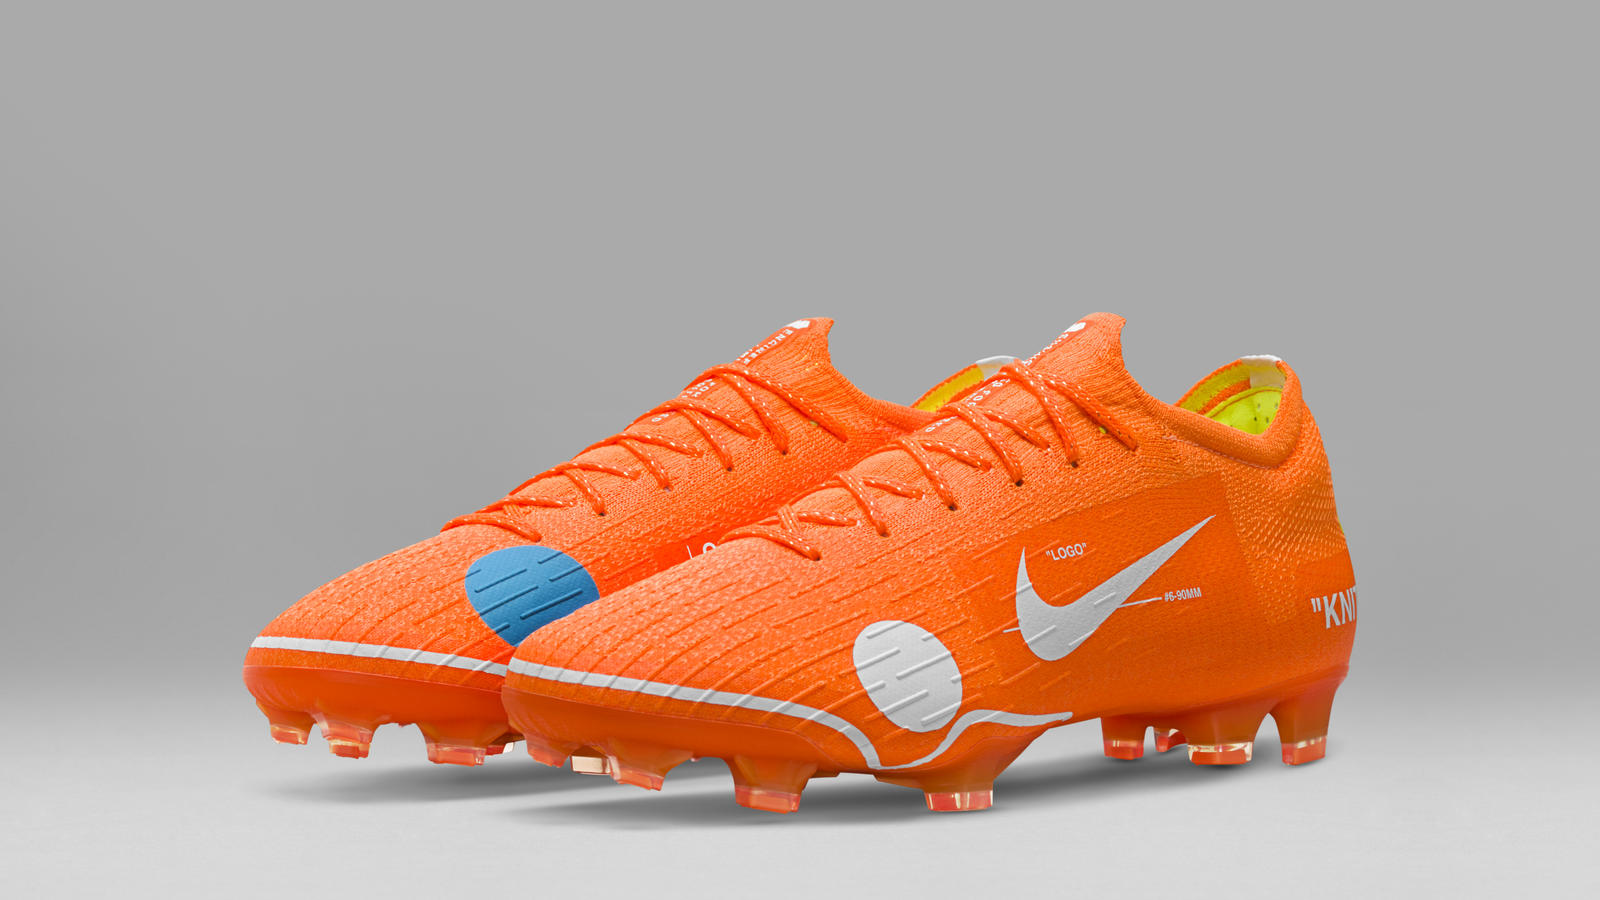 Sp18 fb vapor12elitefg adsccr 045 i hd 1600